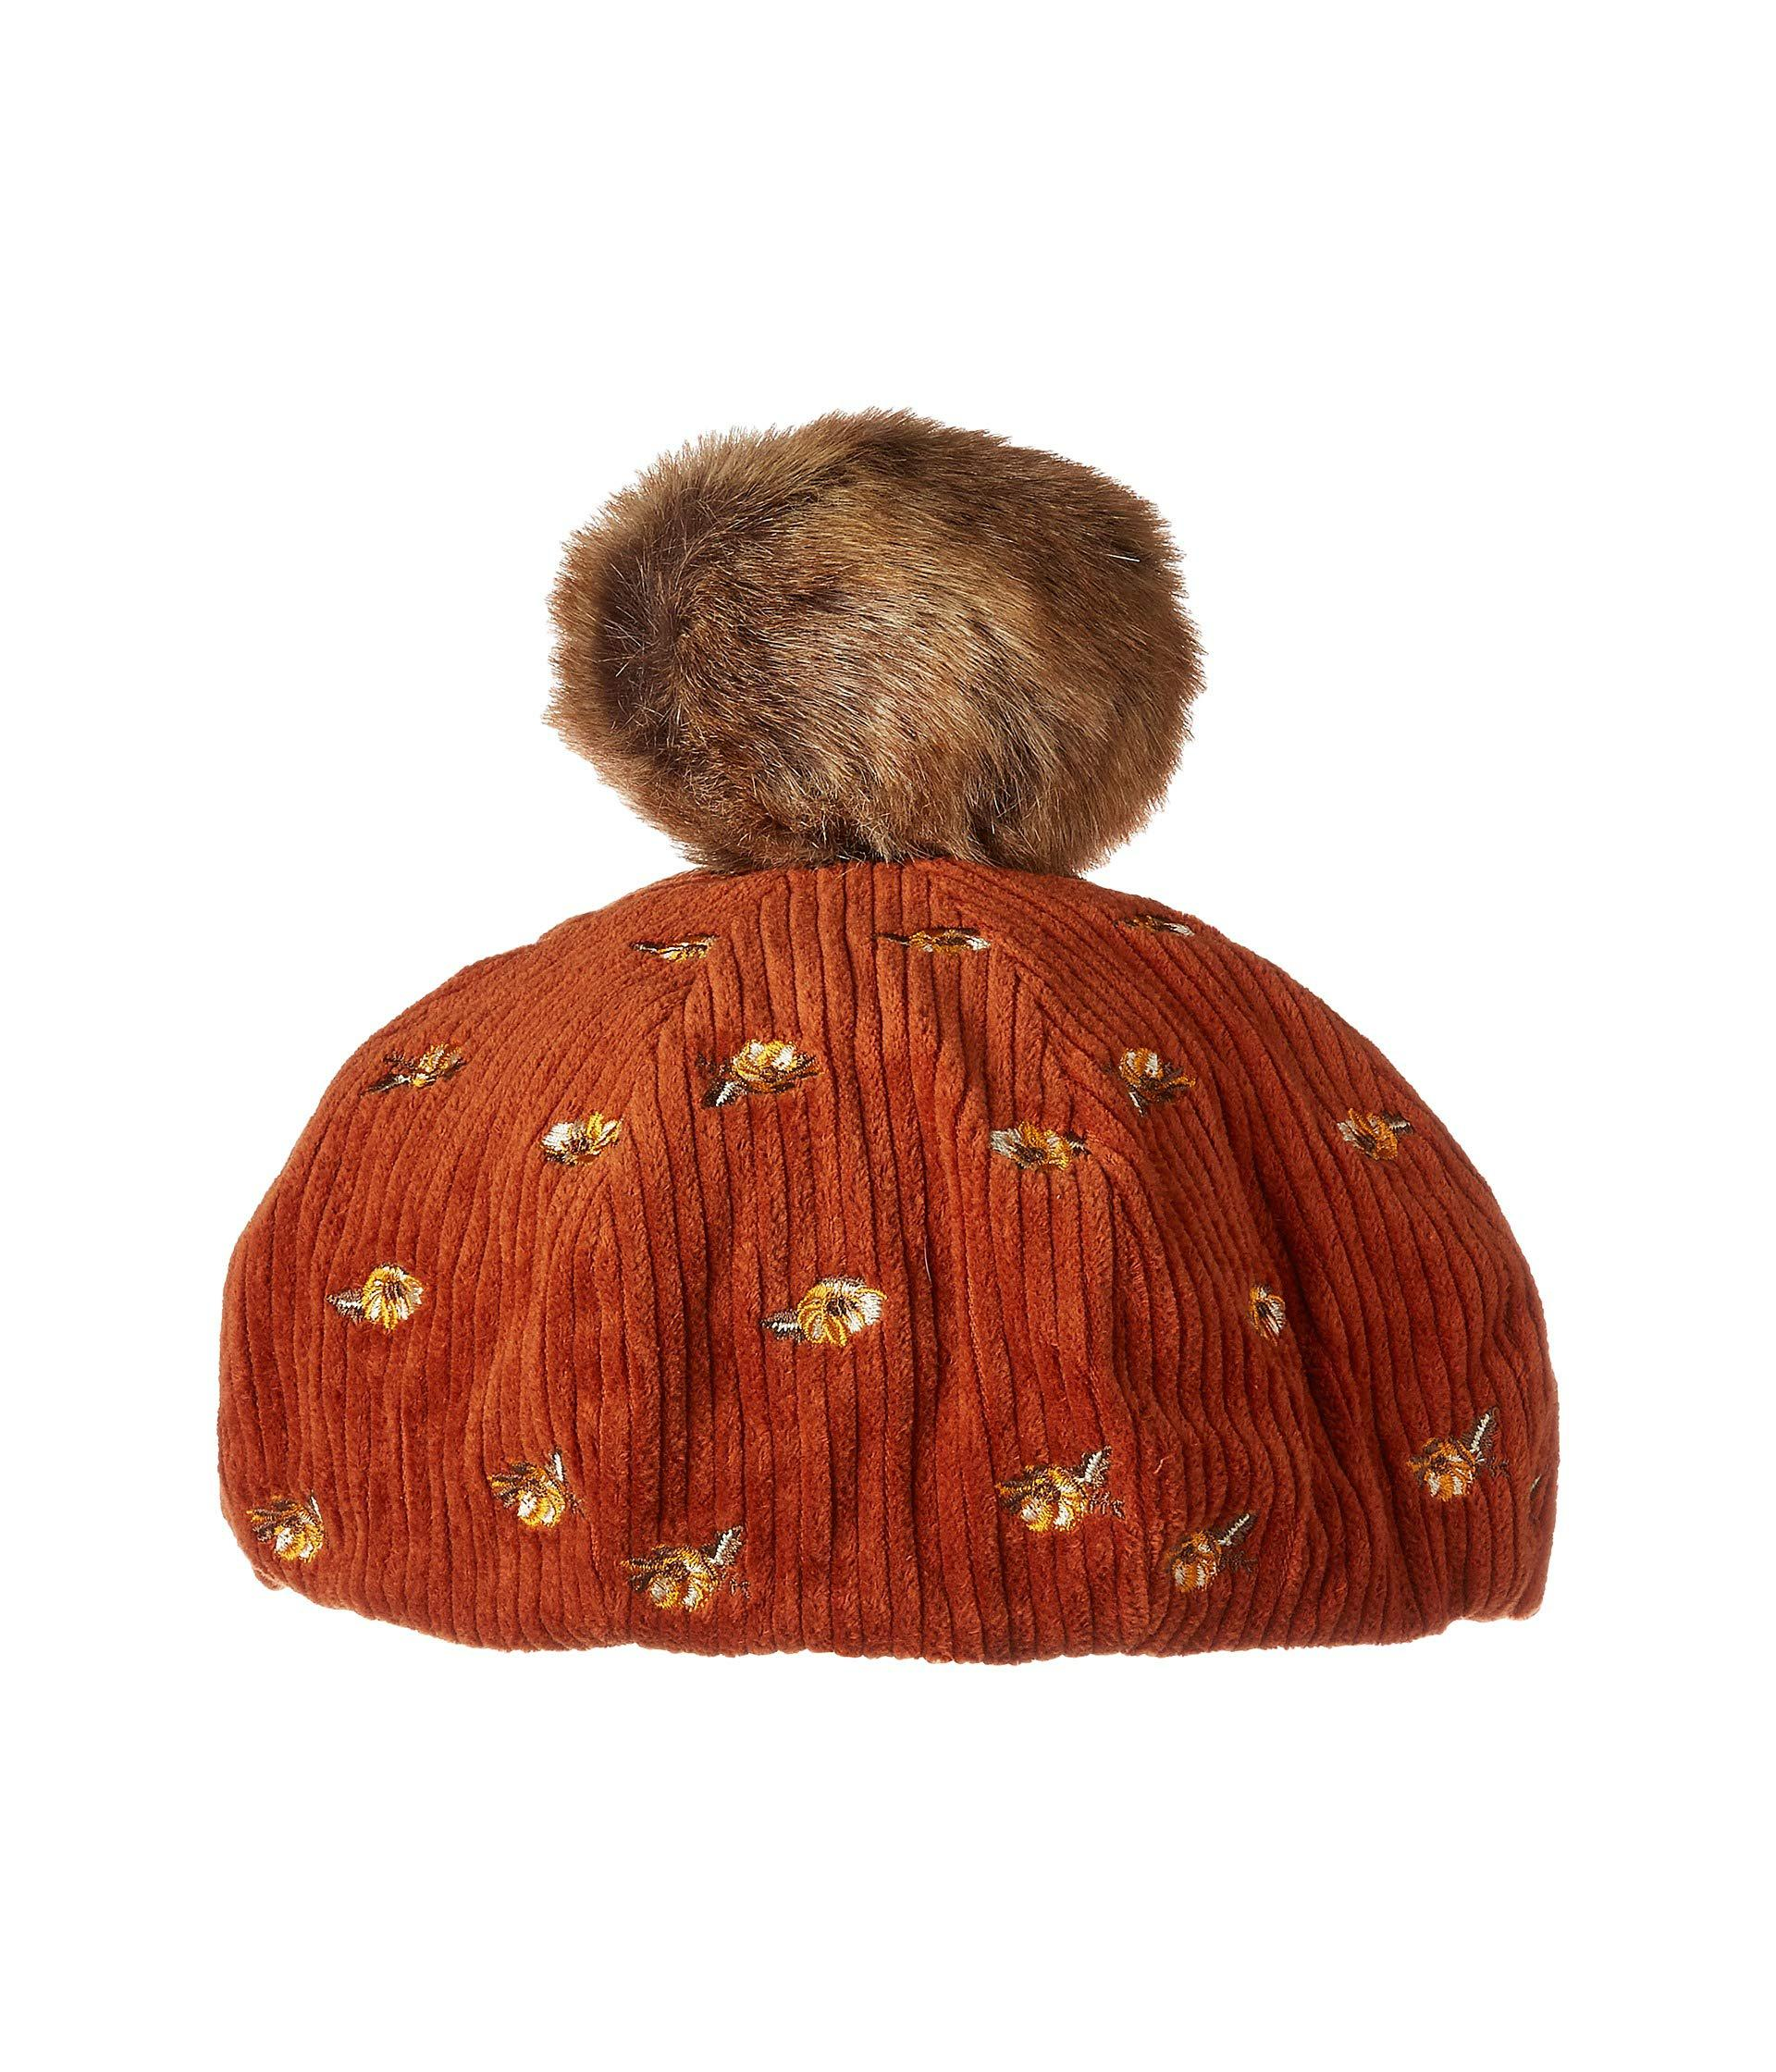 3418cfa719ba4 San Diego Hat Company. Women s Brown Cth8124 Wide Wale Corduroy Beret With  Floral Embroidery And Faux Fur Pom